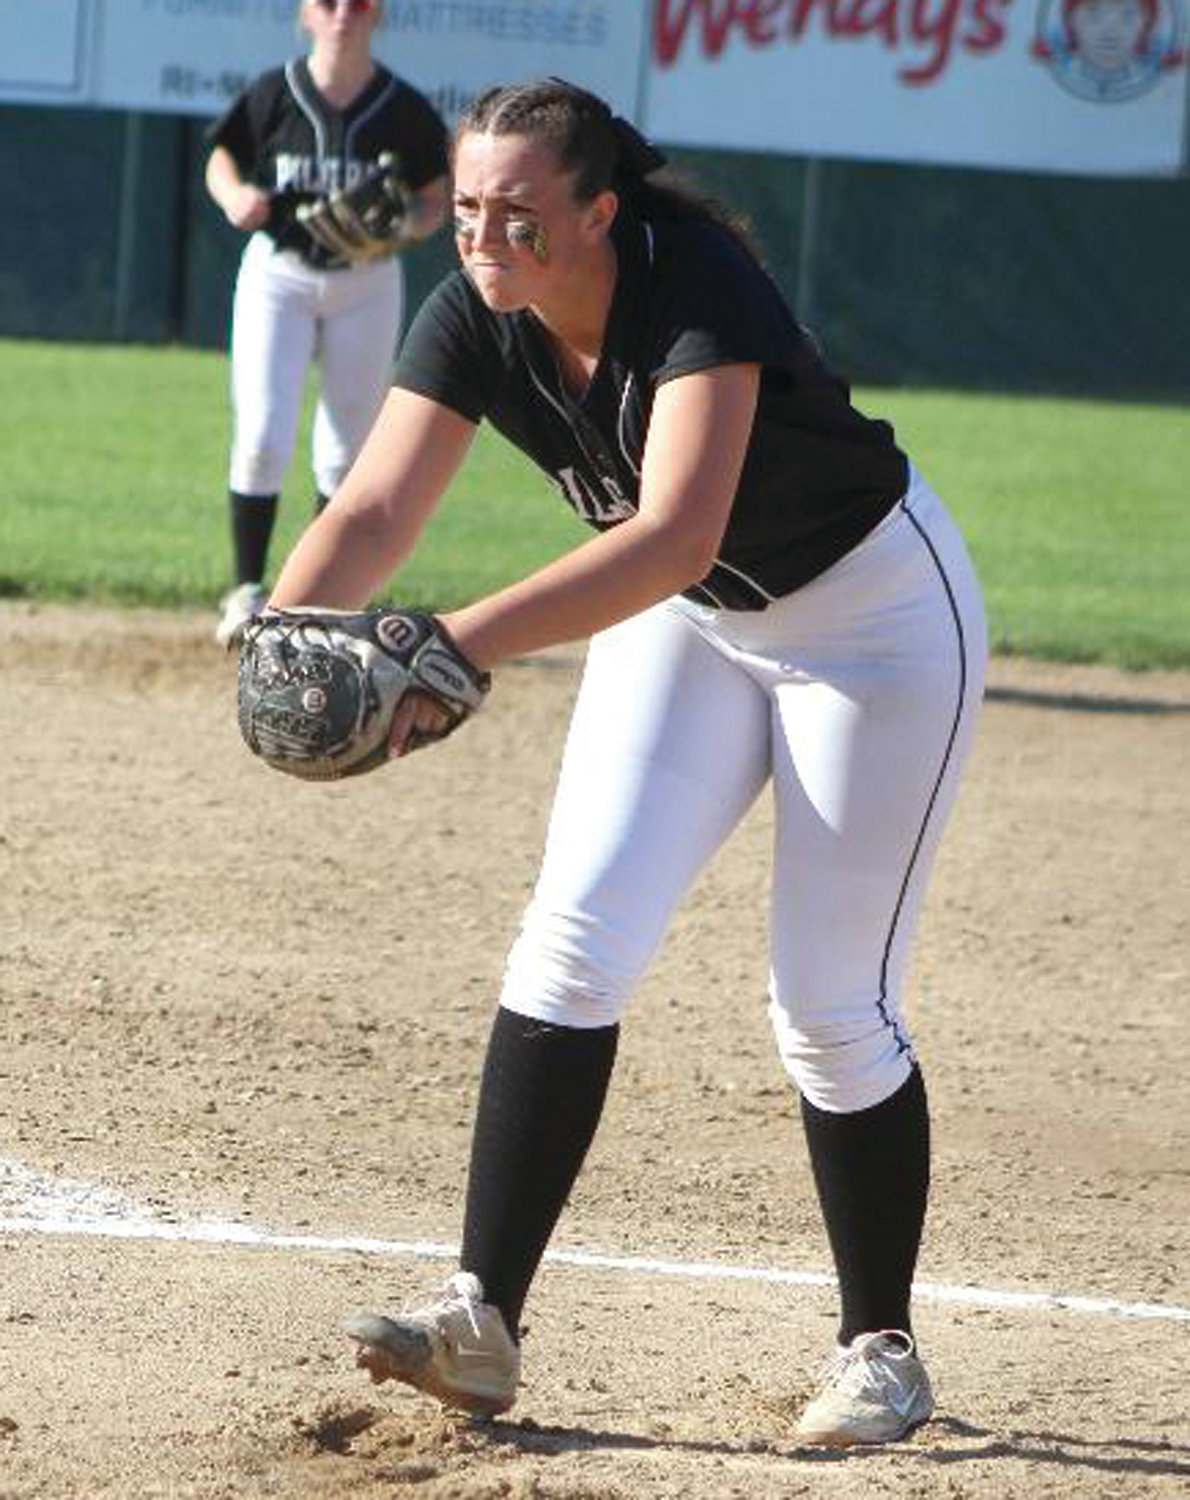 IN THE CIRCLE: Pilgrim pitcher Cat Fallon winds up to pitch against Coventry.